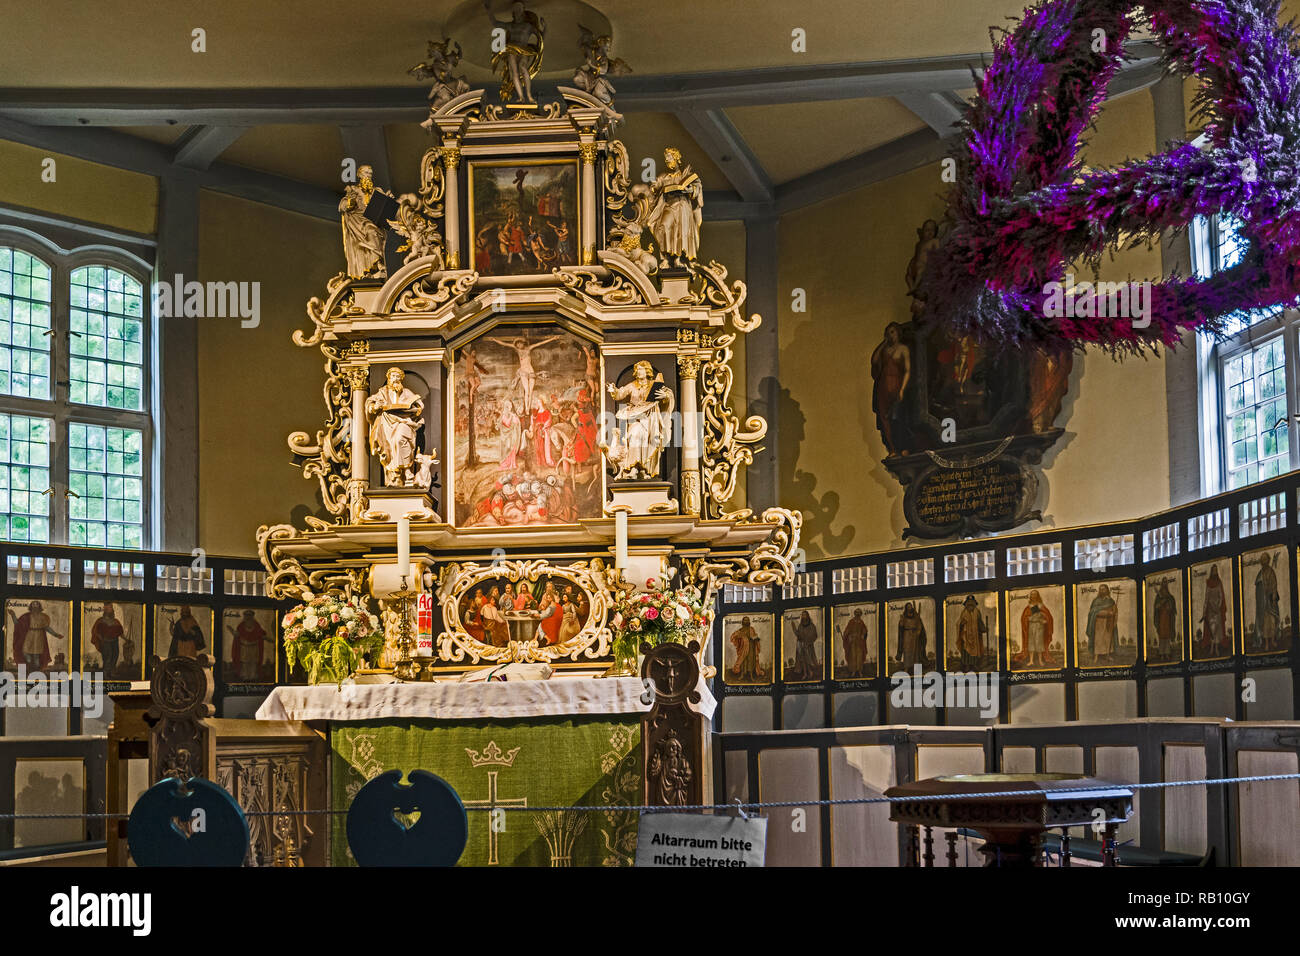 Egestorf (Lower Saxony, Germany: St. Stephanus Church; Egestorf (Niedersachsen): St. Stephanus Kirche - Stock Image